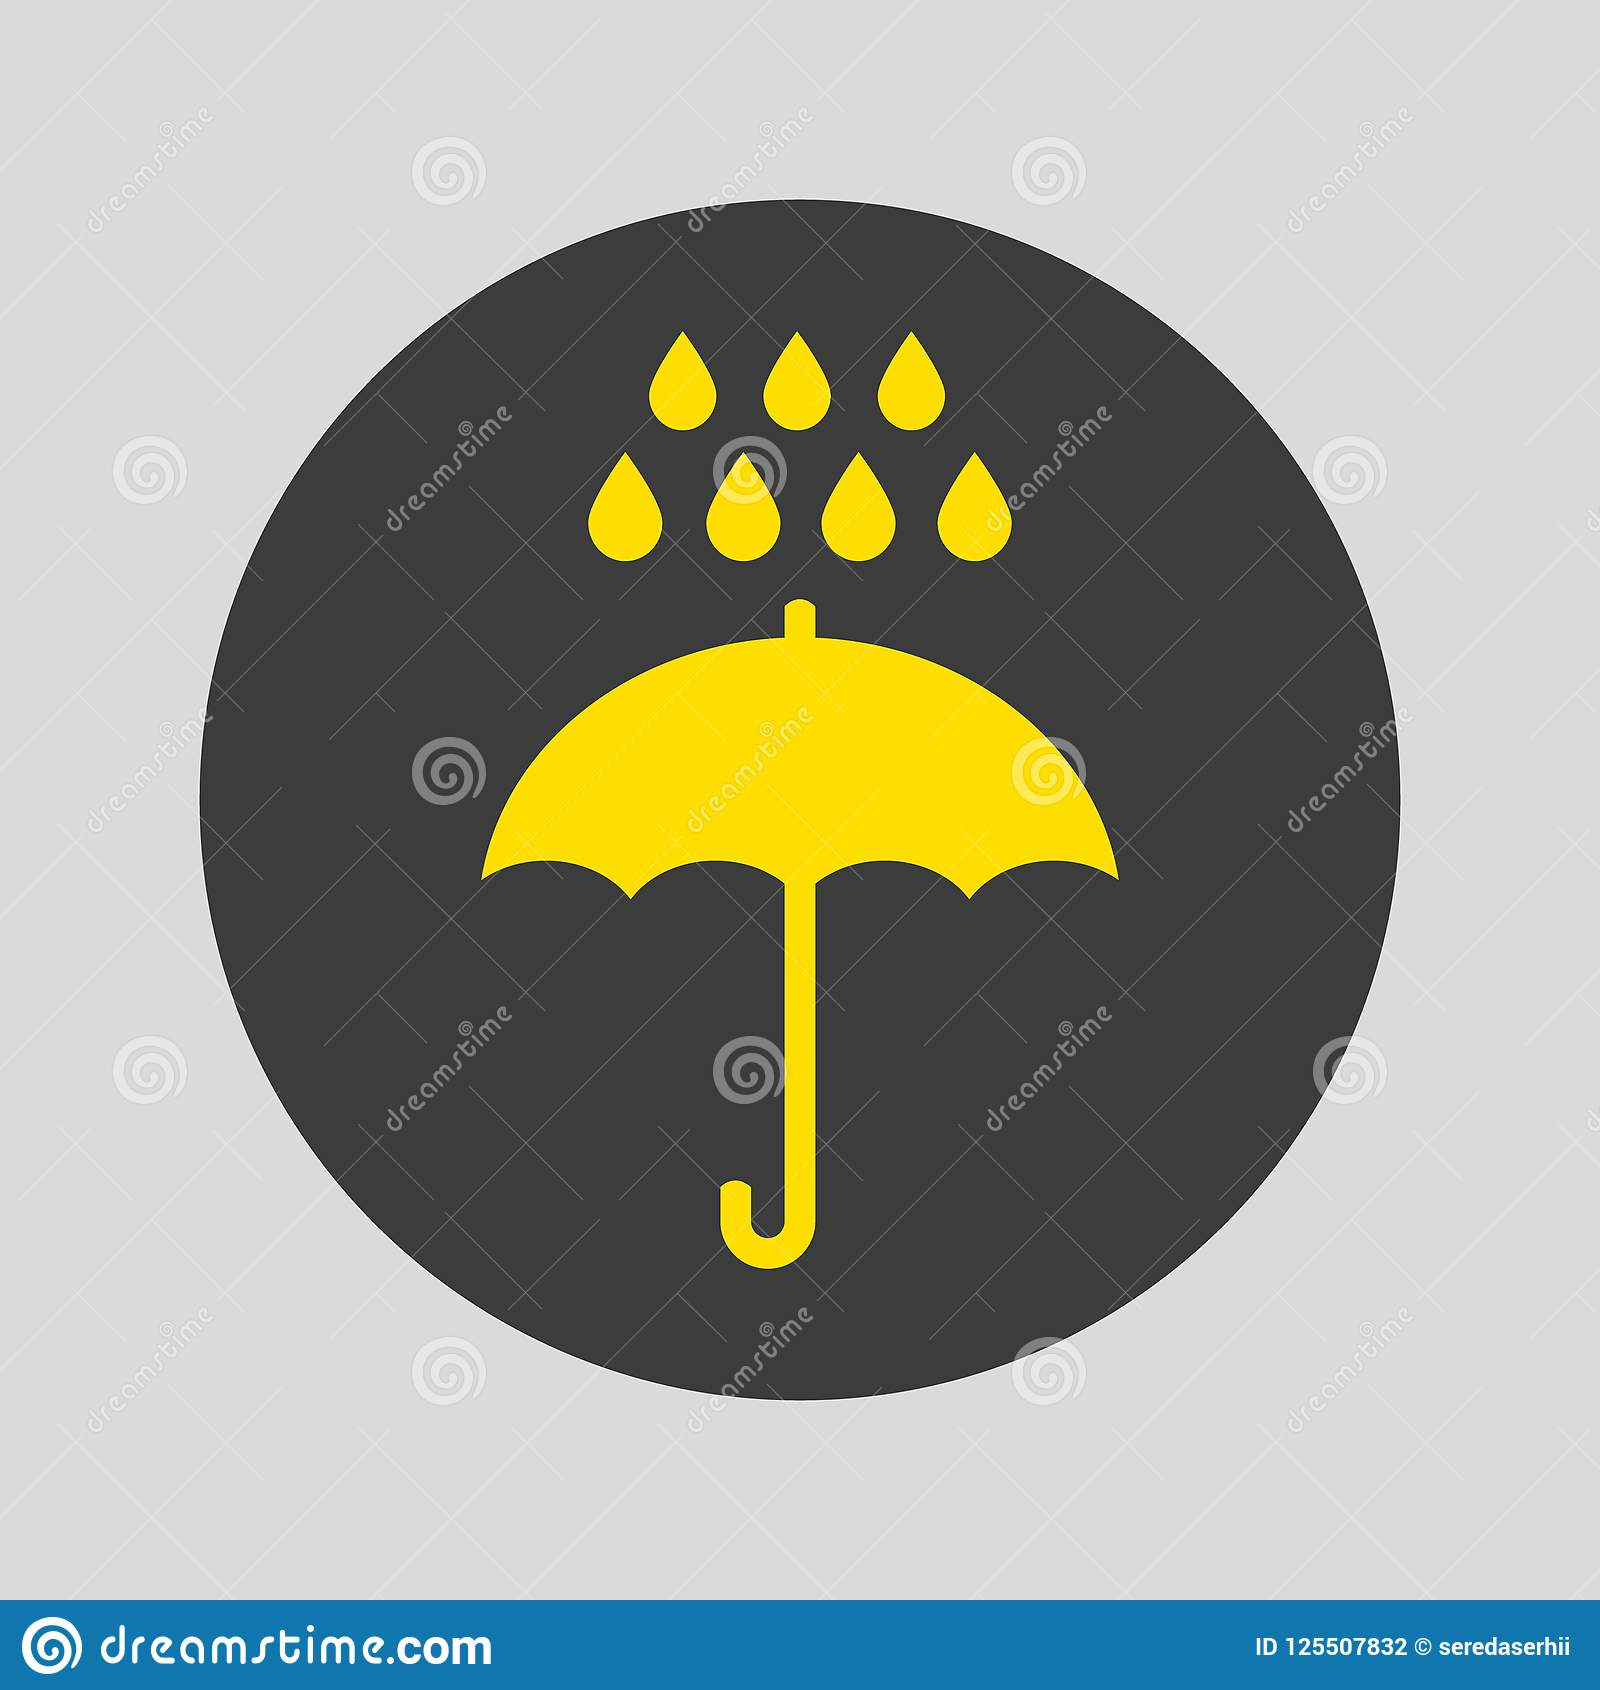 Umbrella and rain icon on gray background.